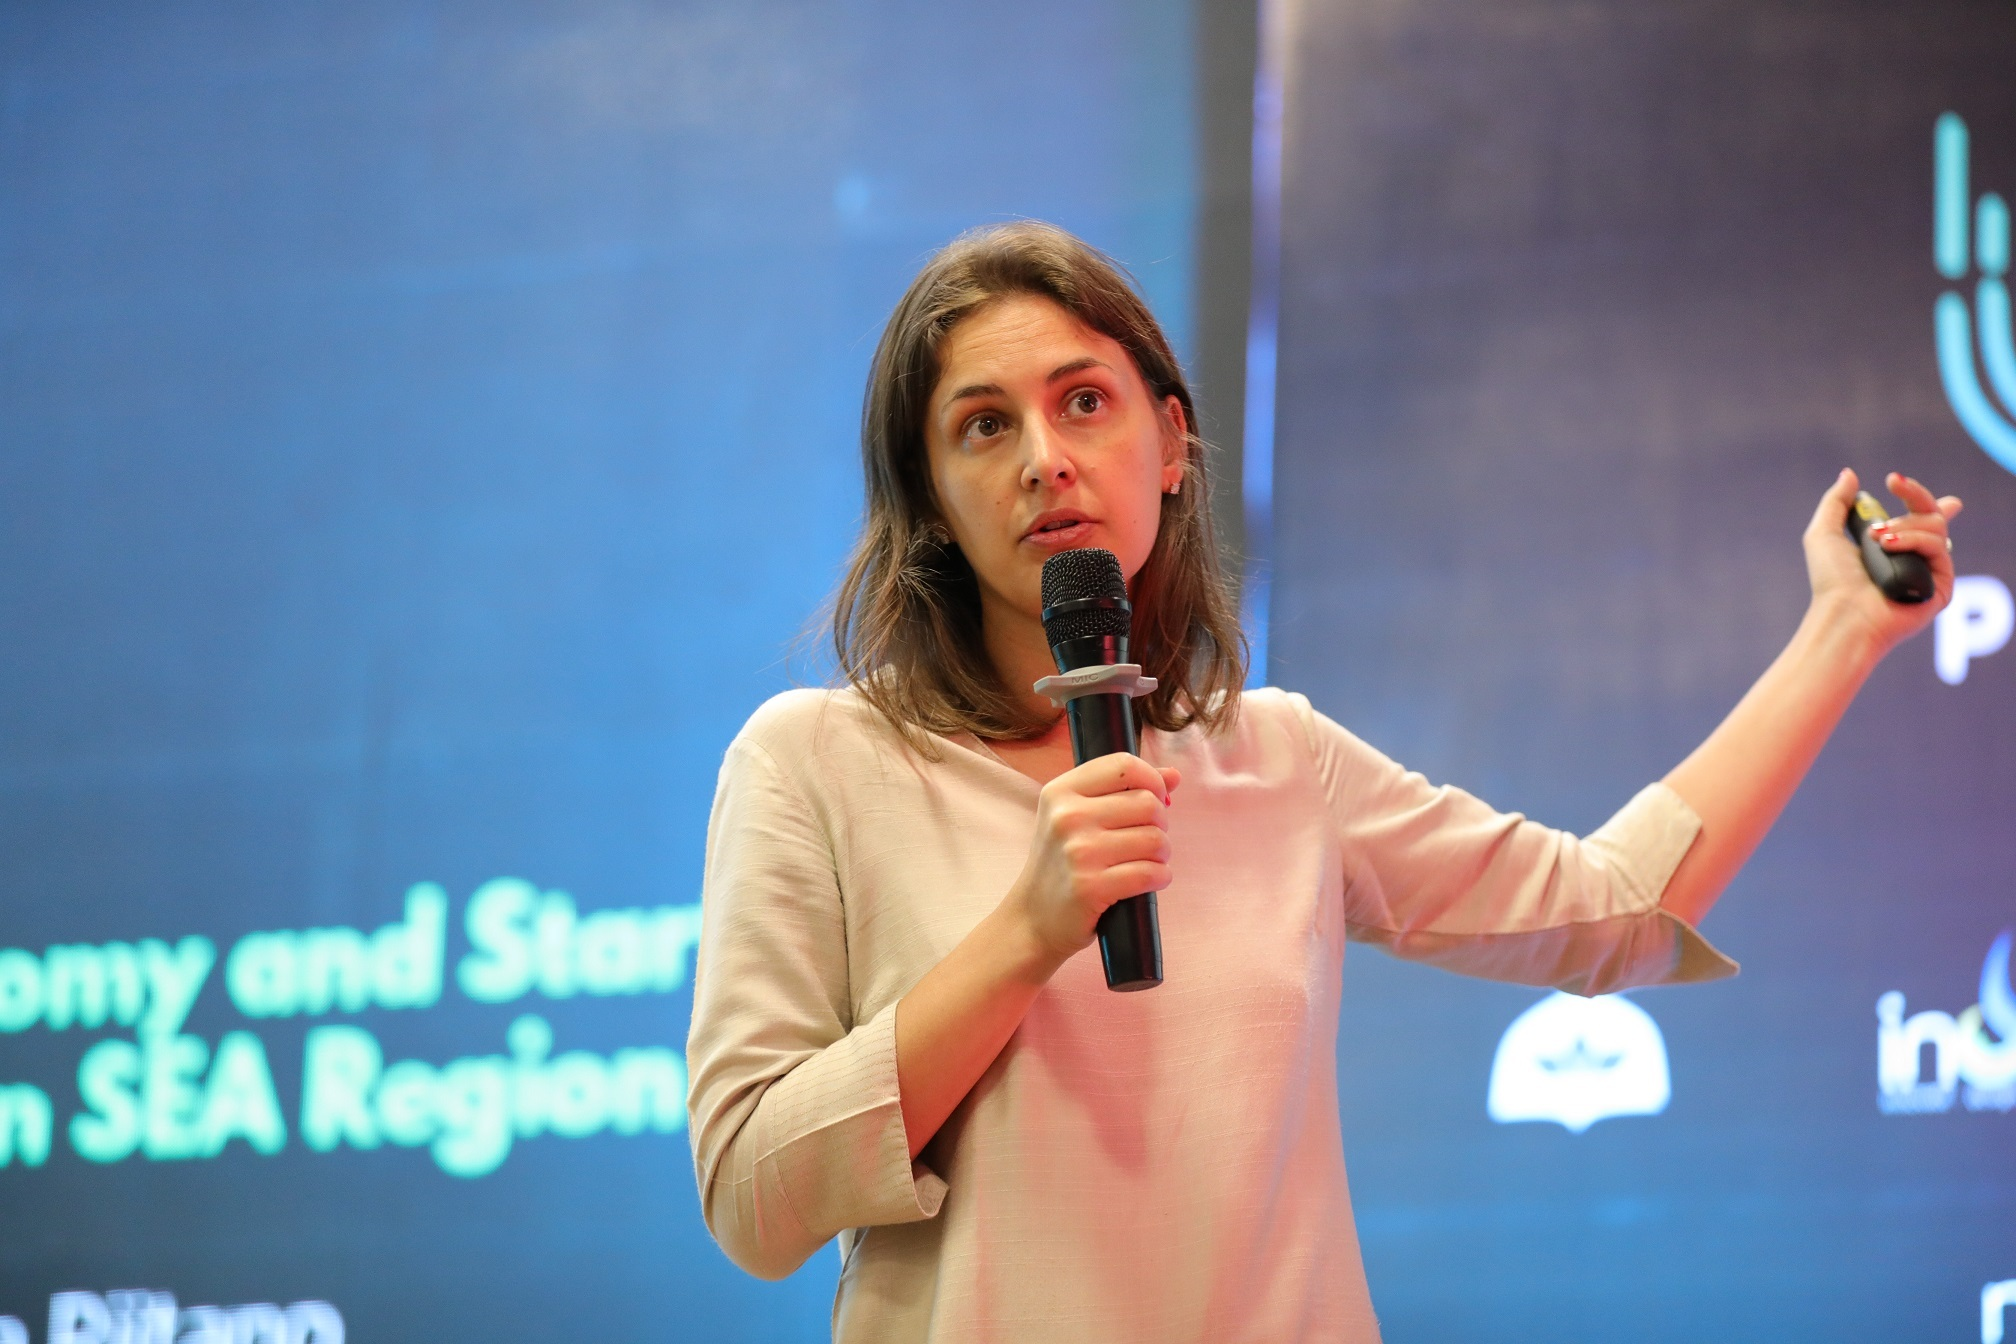 Giuliana Riitano talking about Internet Econommy and Startup Unicorns in SEA Region at UX Pakistan